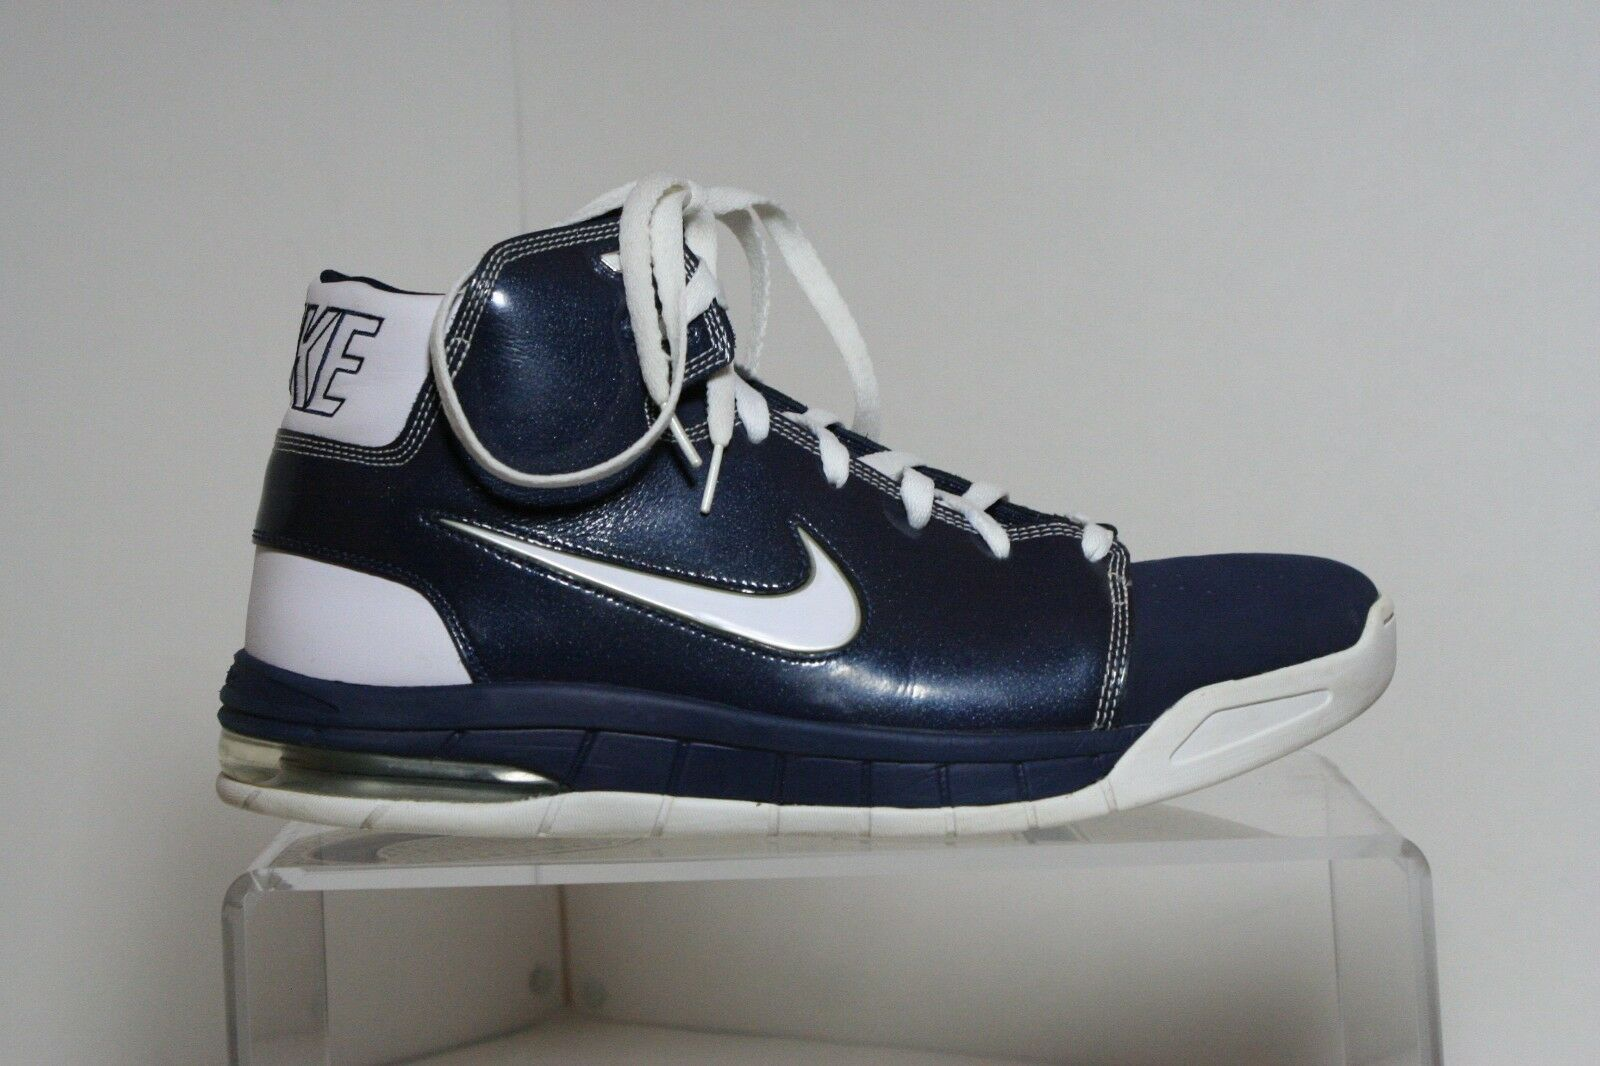 buy cheap 88436 56671 Nike Air Max Bizness Bizness Bizness High Basketball Sneaker 2008 Multi  Navy White Men 12.5 Hip